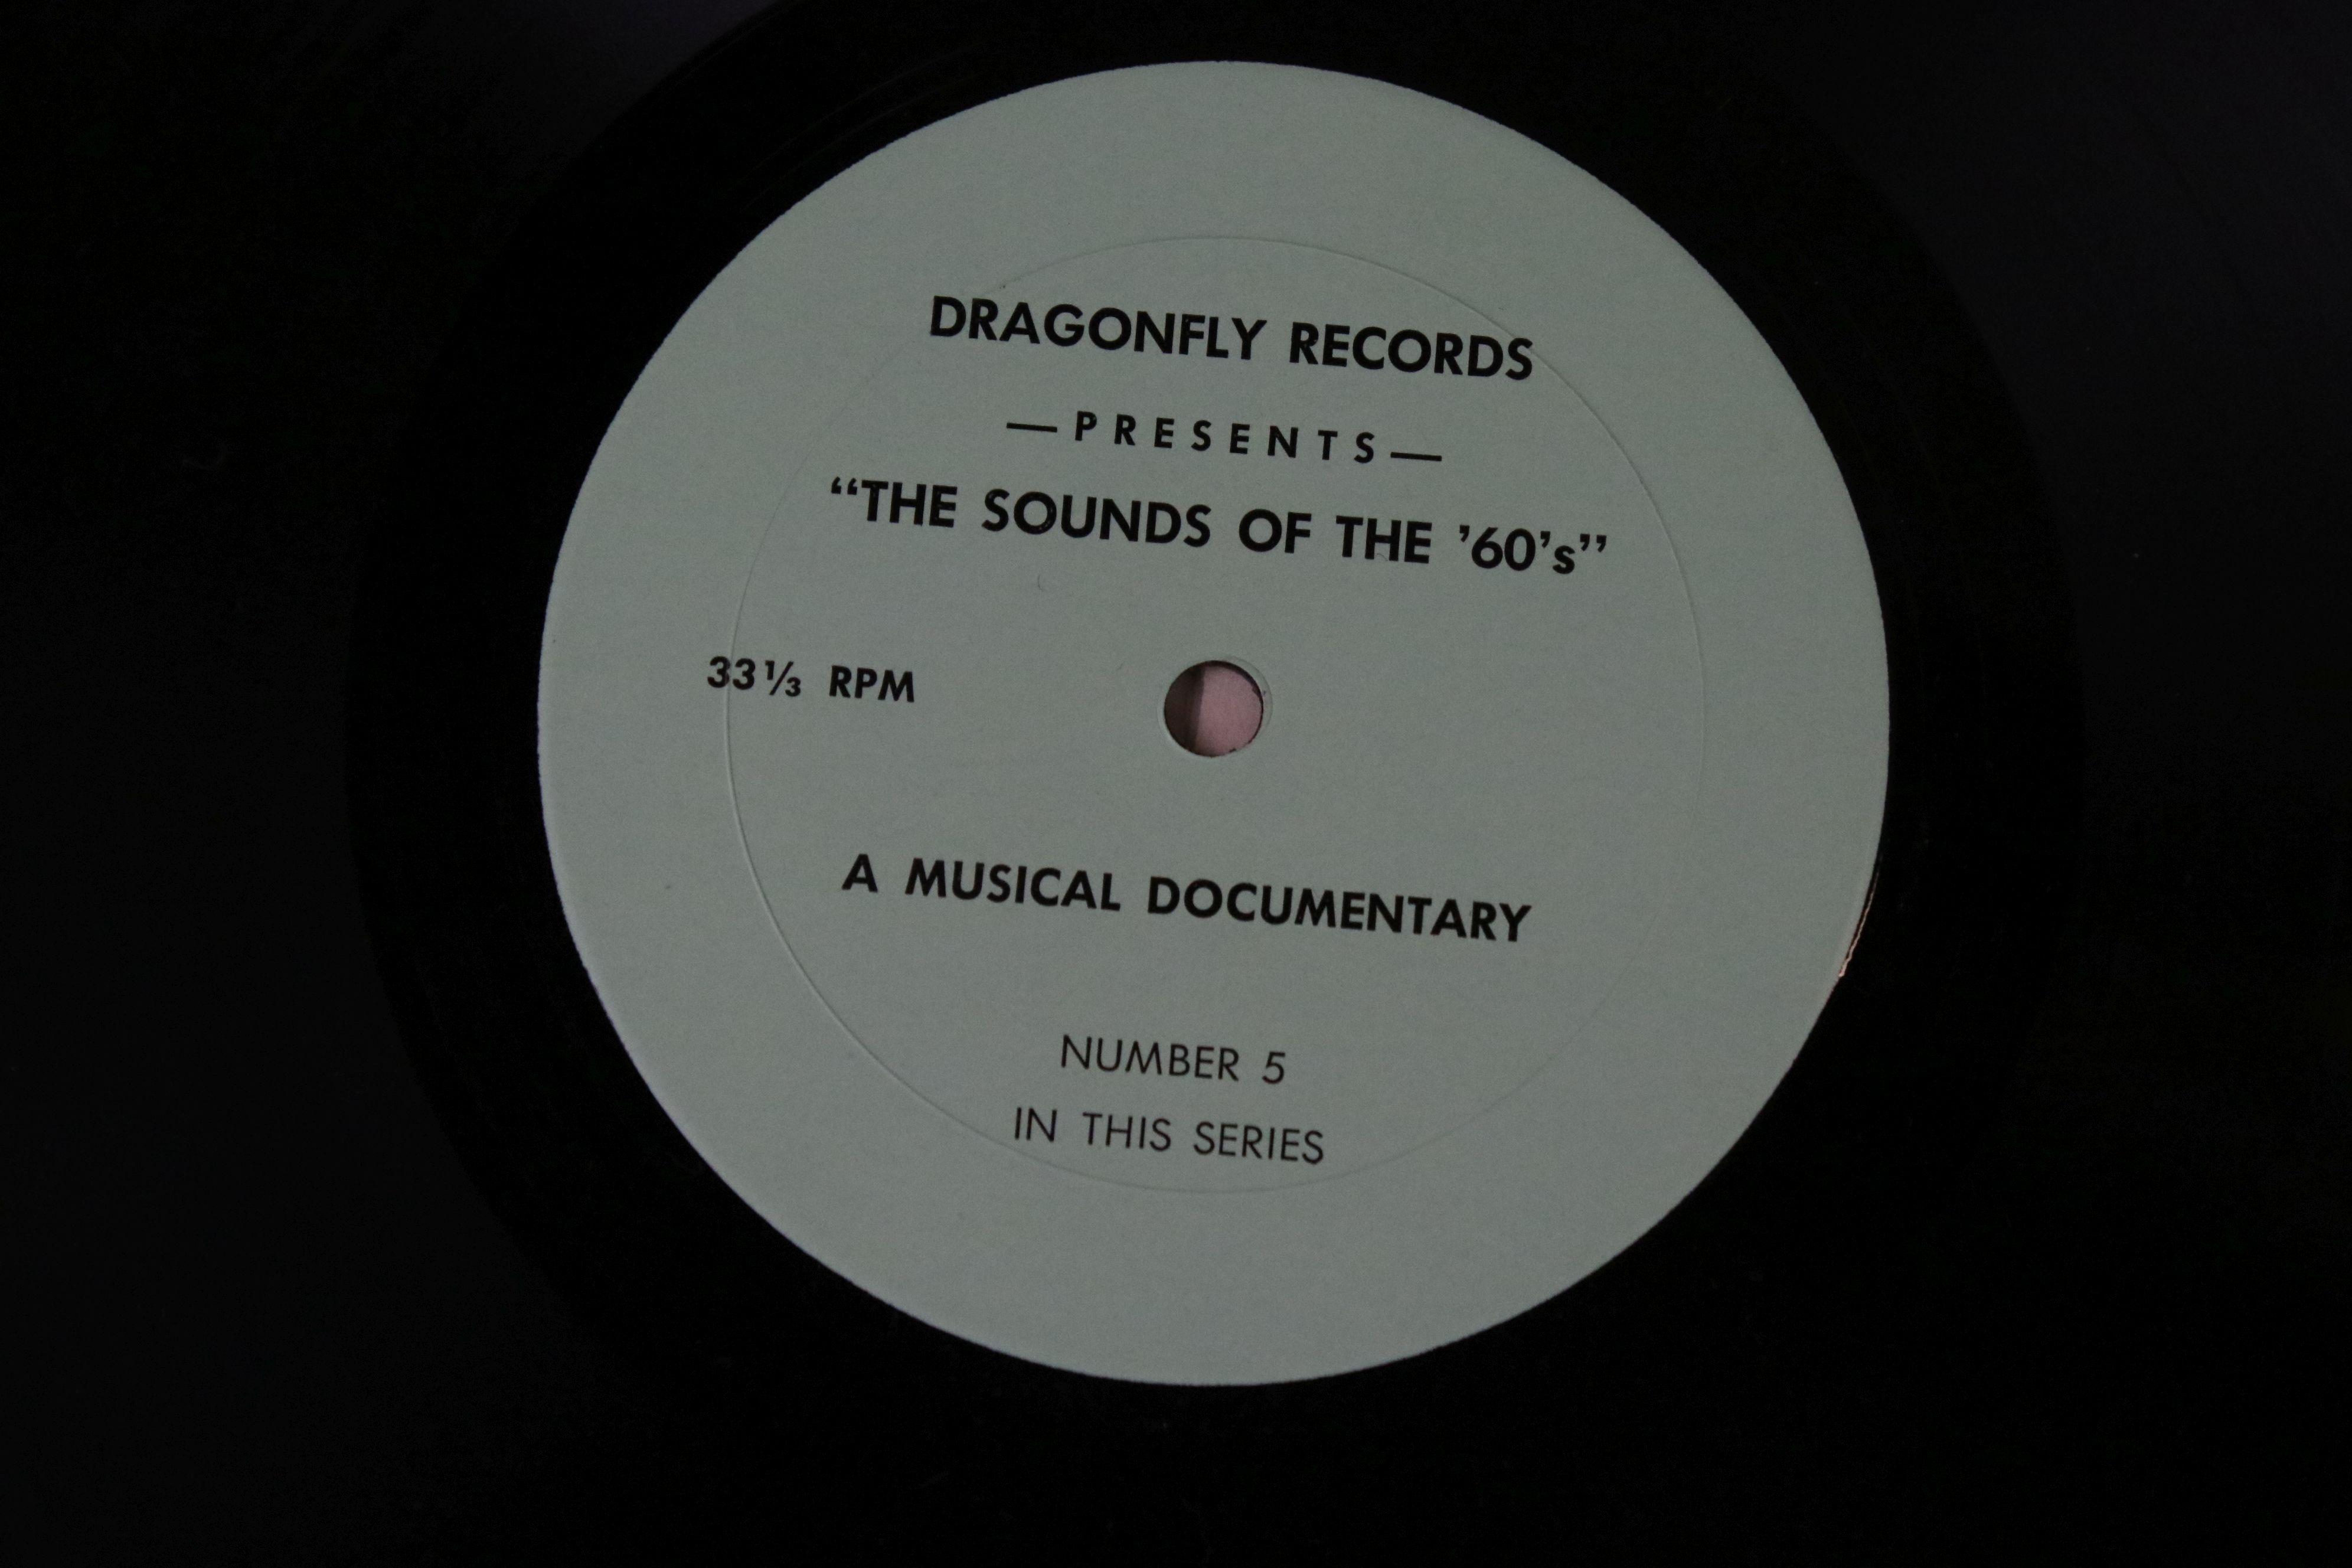 Vinyl - David Bowie The Thin White Duke 1977 Unofficial US Double LP release on Dragonfly label, - Image 3 of 7